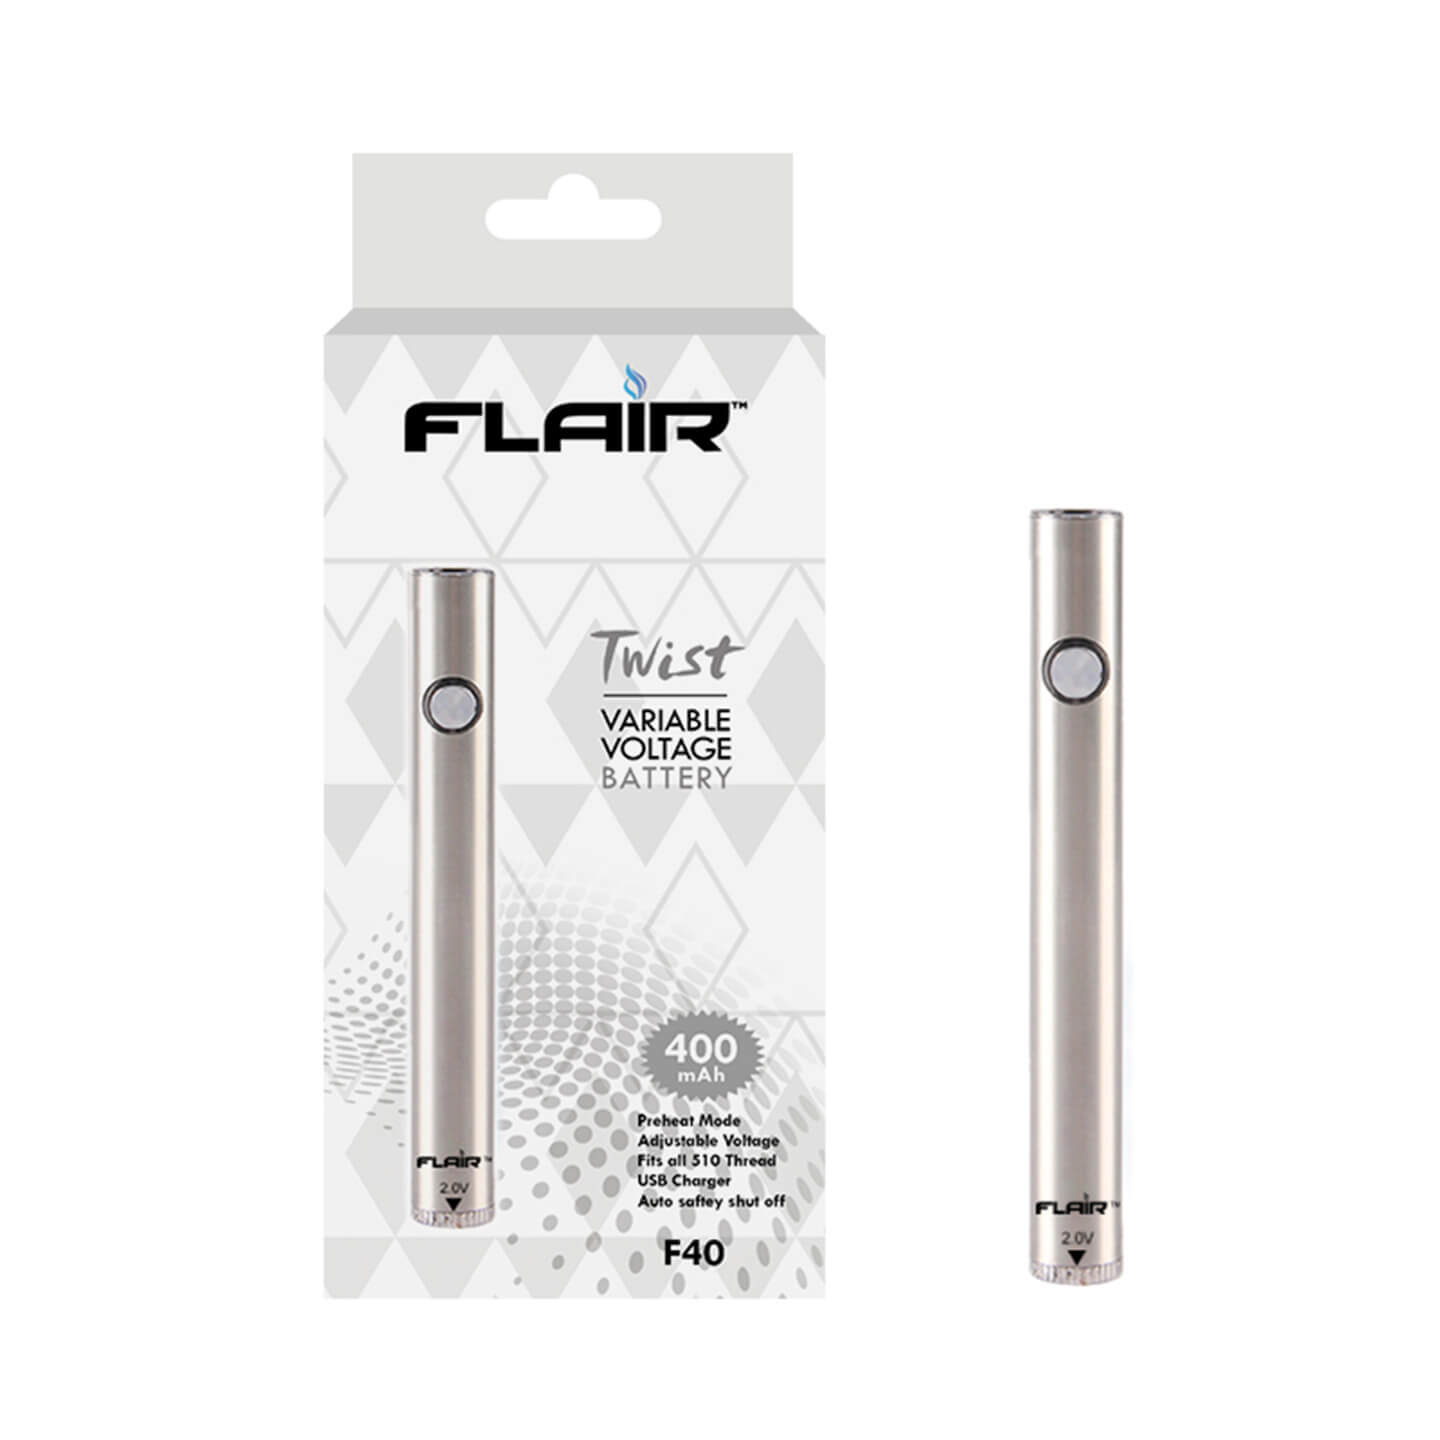 flair twist variable voltage battery 400mah silver F40